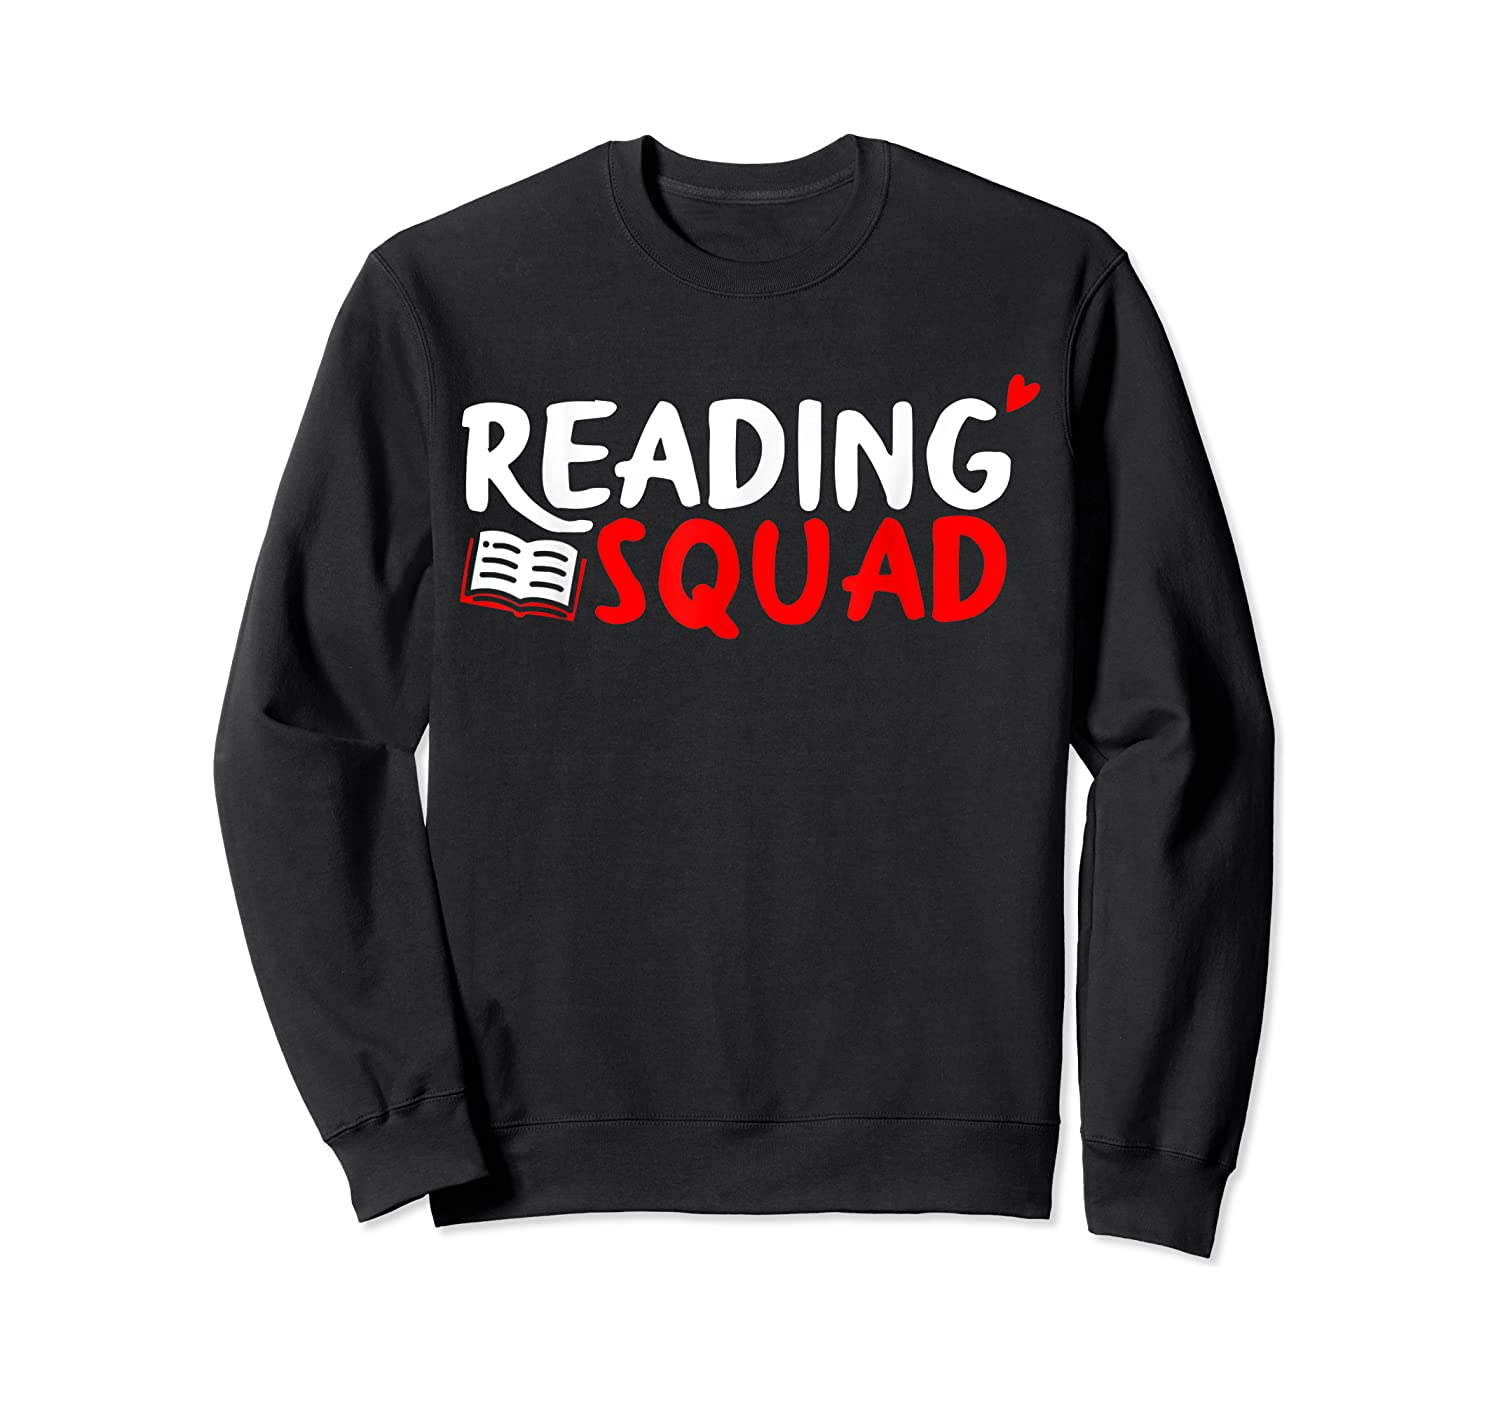 Book Reading Bookworm Librarian Library T-shirt Crewneck Sweater